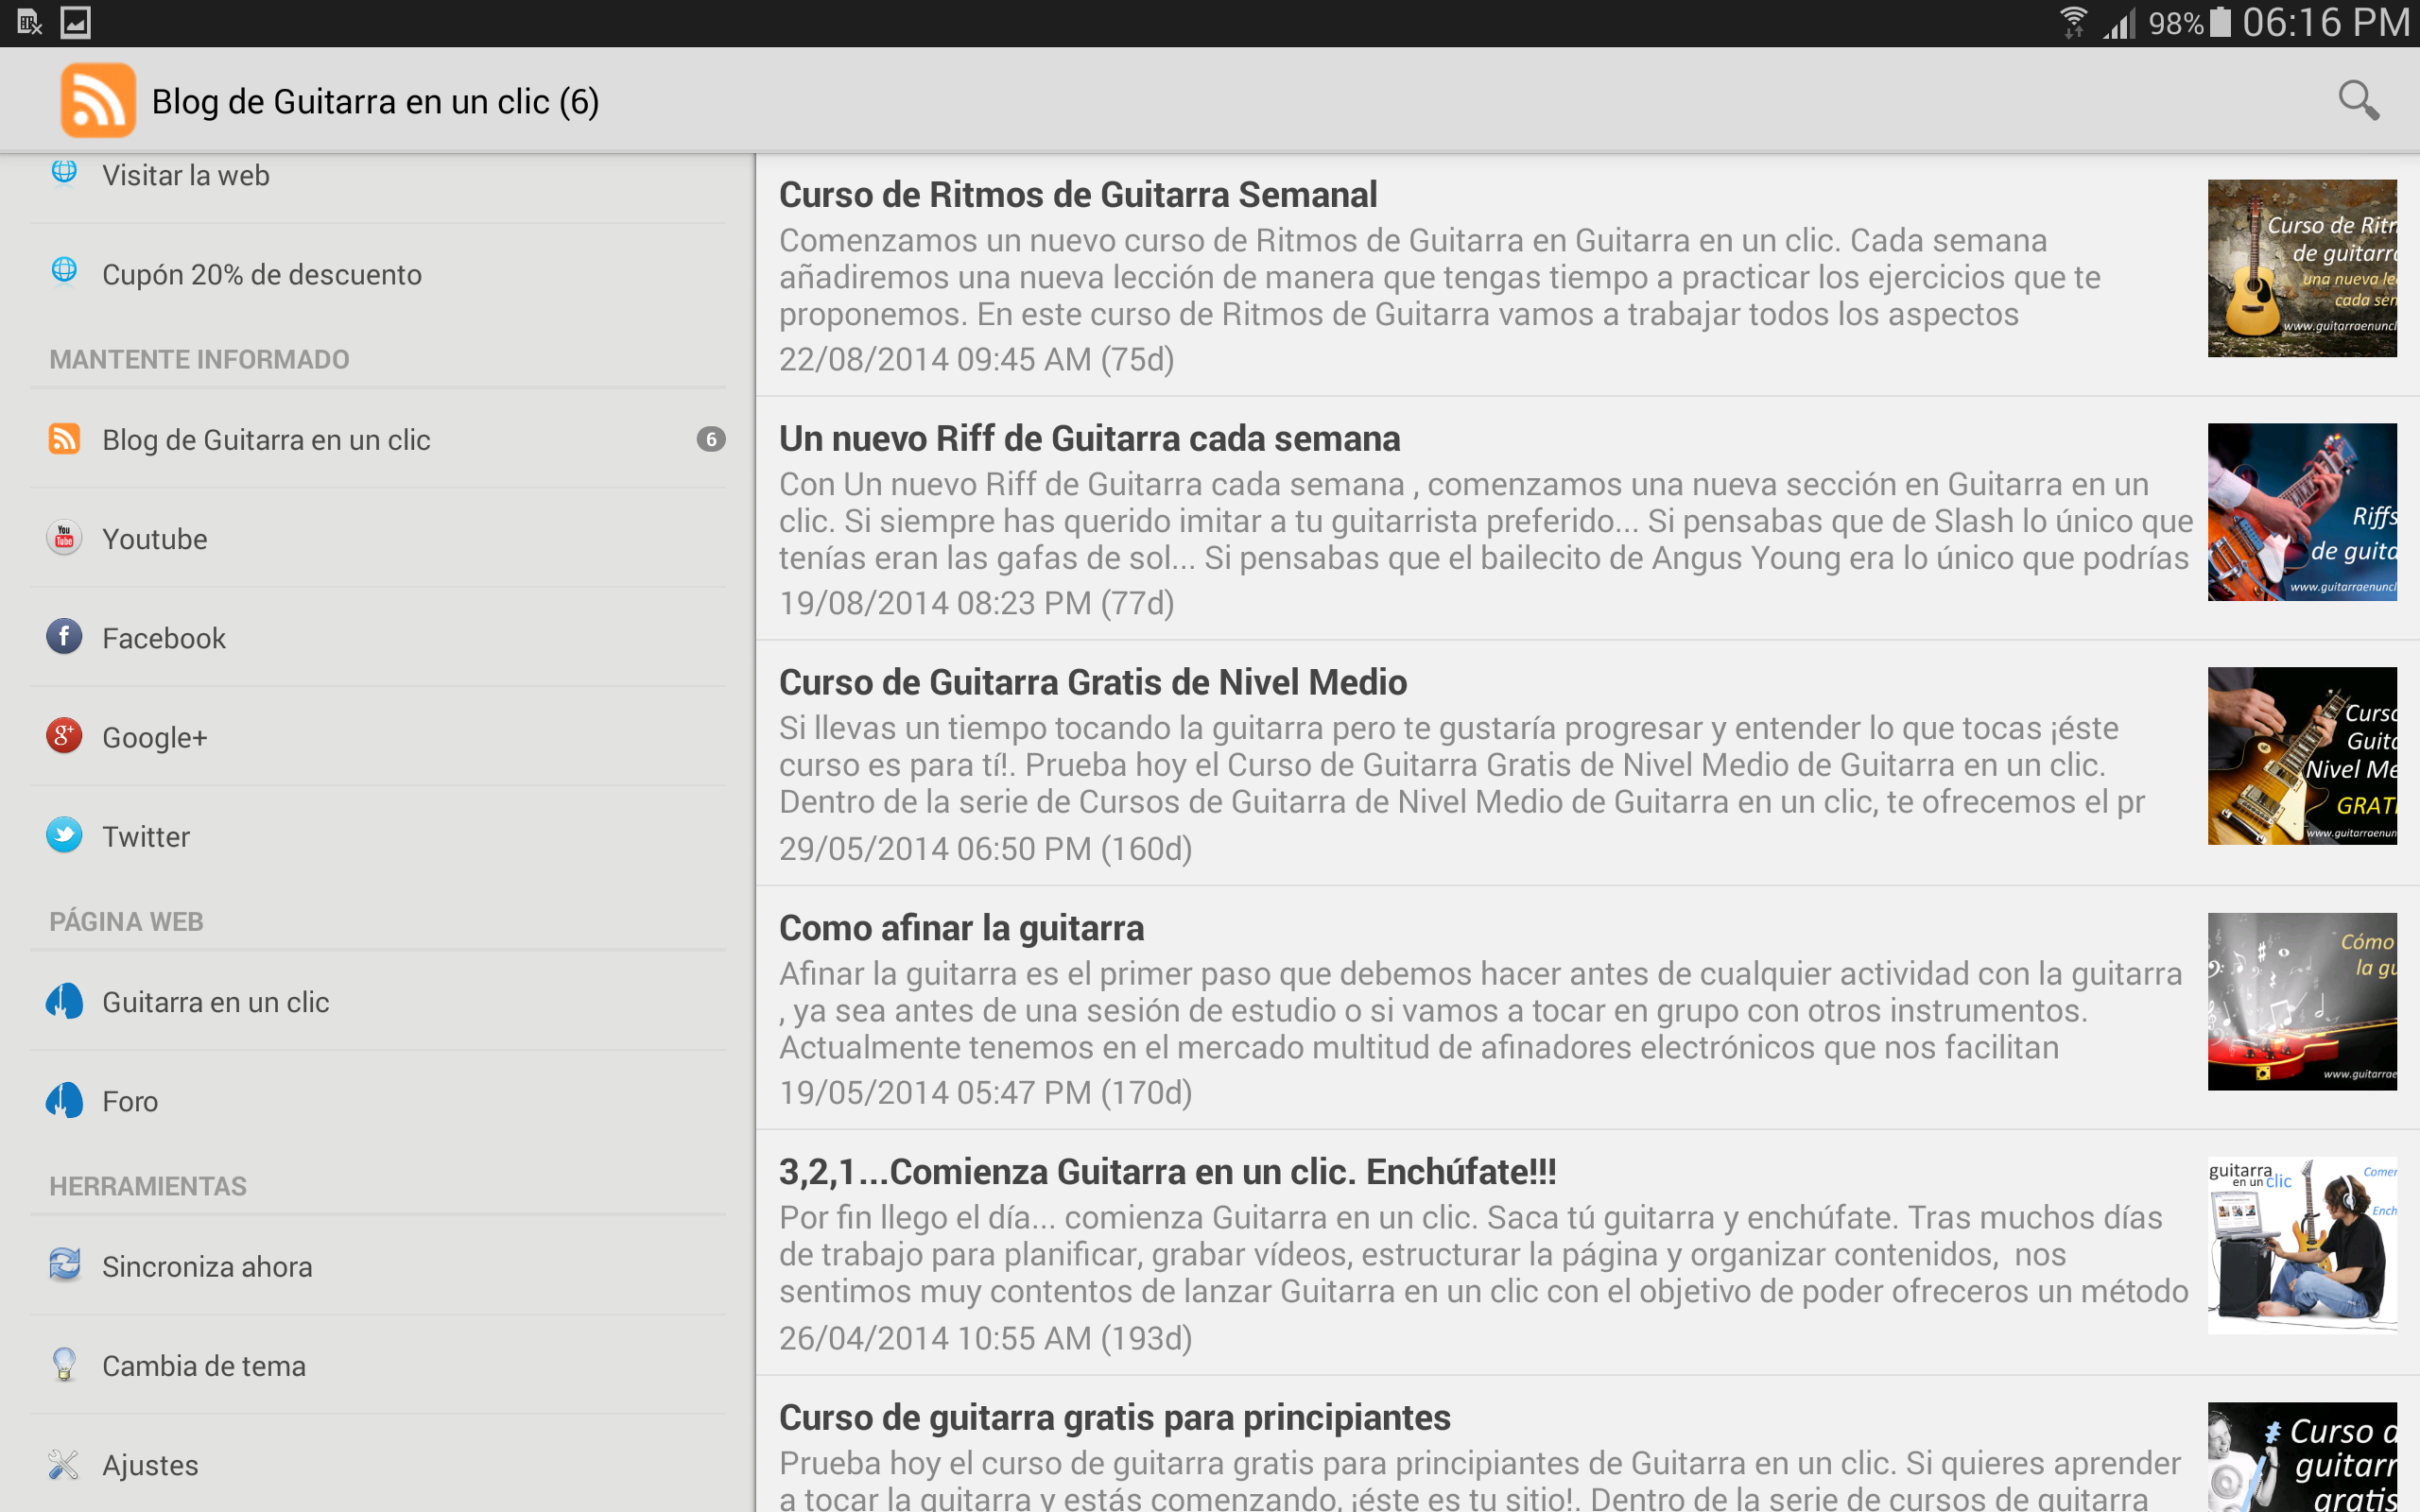 Amazon.com: Guitarra en un clic. Free Guitar Course.: Appstore for ...